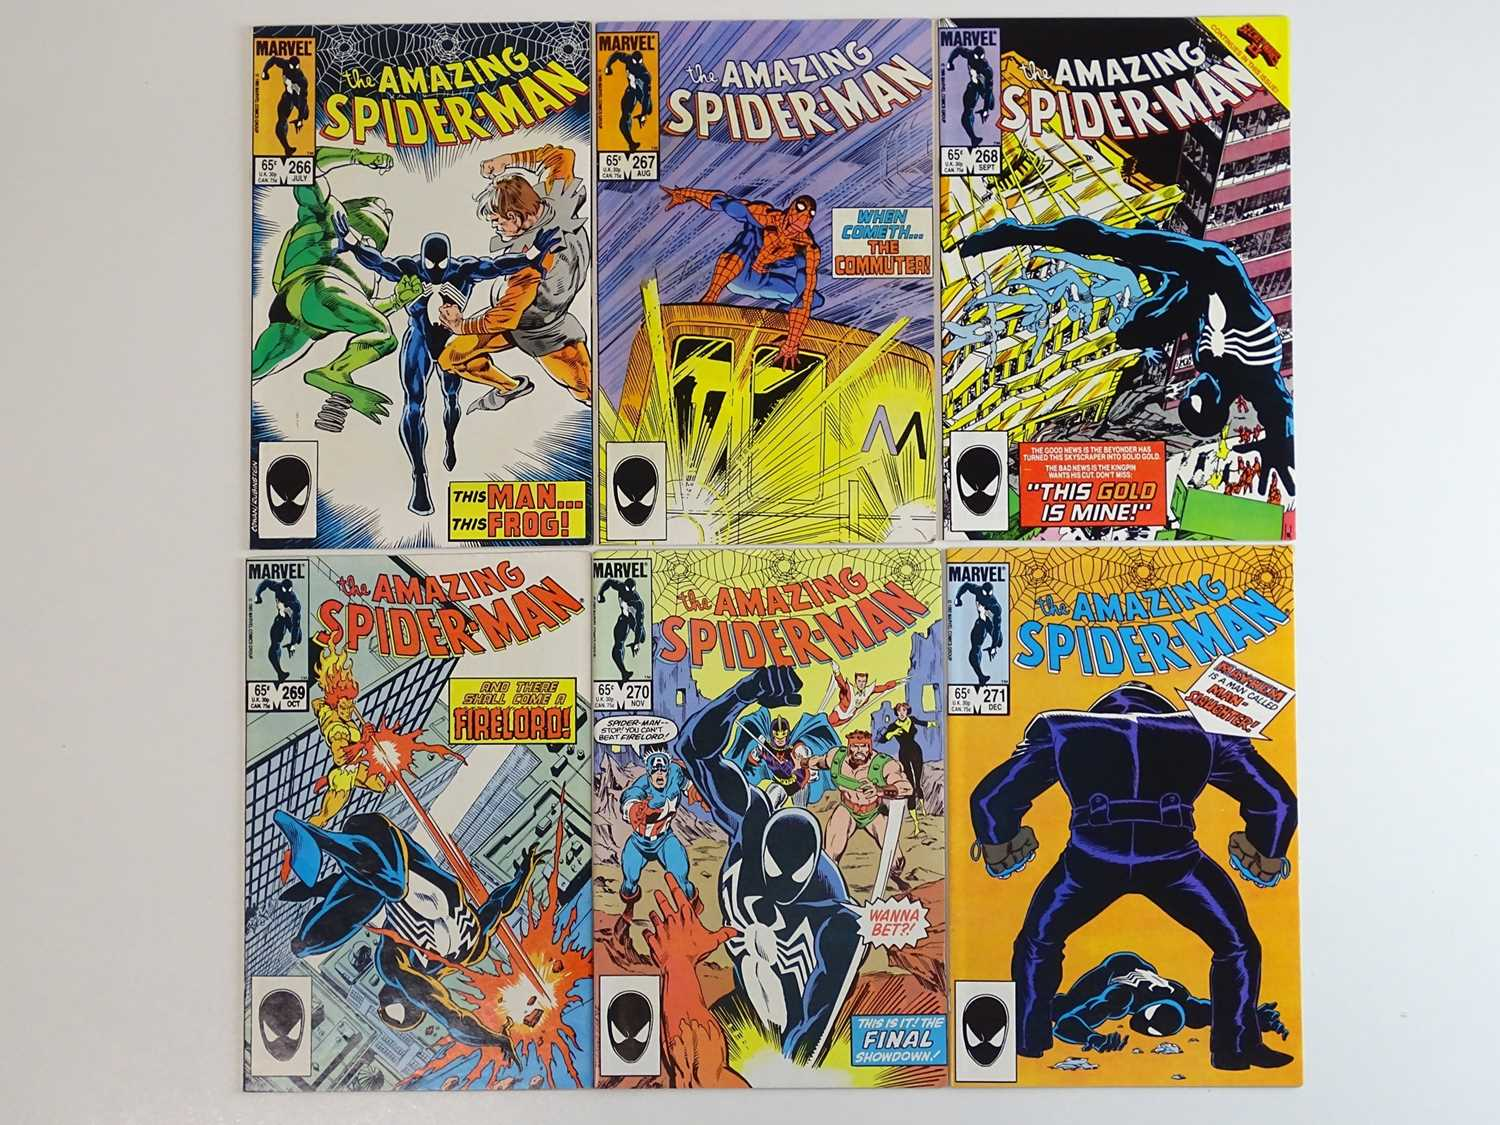 AMAZING SPIDER-MAN #266, 267, 268, 269, 270, 271 - (6 in Lot) - (1985 - MARVEL) - Includes Avengers,